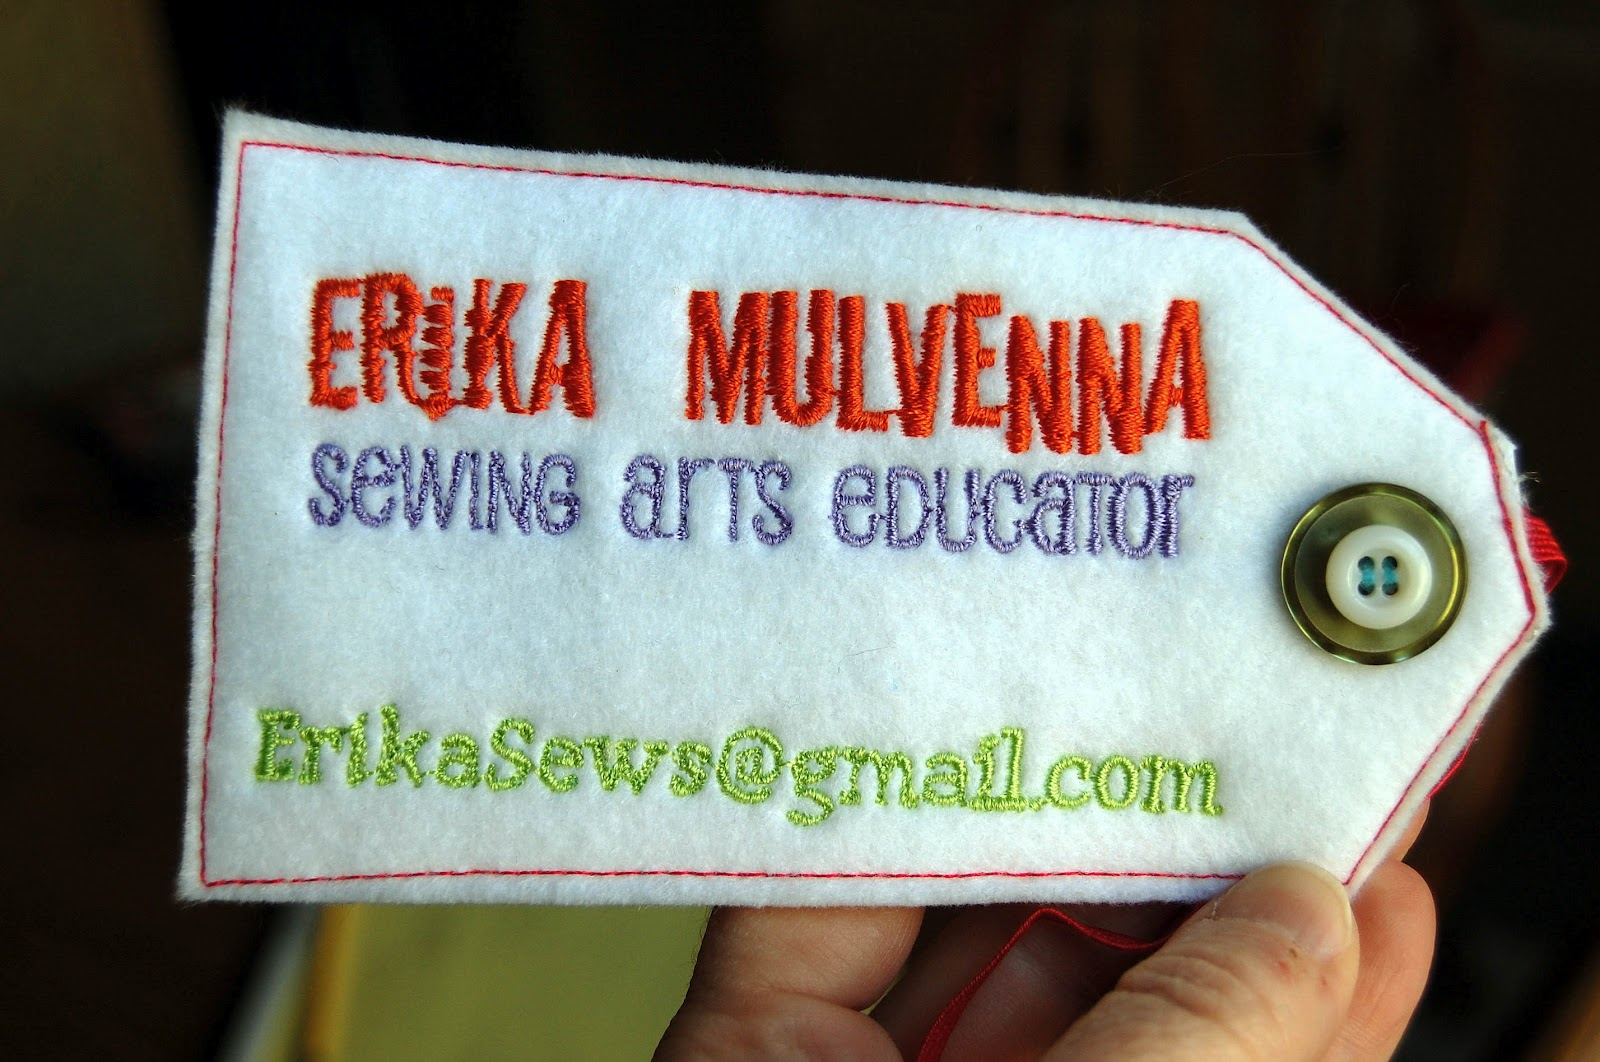 Miss sews it all finished embroidered business cards for those of you whove been asking for details these were created in the bernina v6 designer plus embroidery software i digitized the design on the front colourmoves